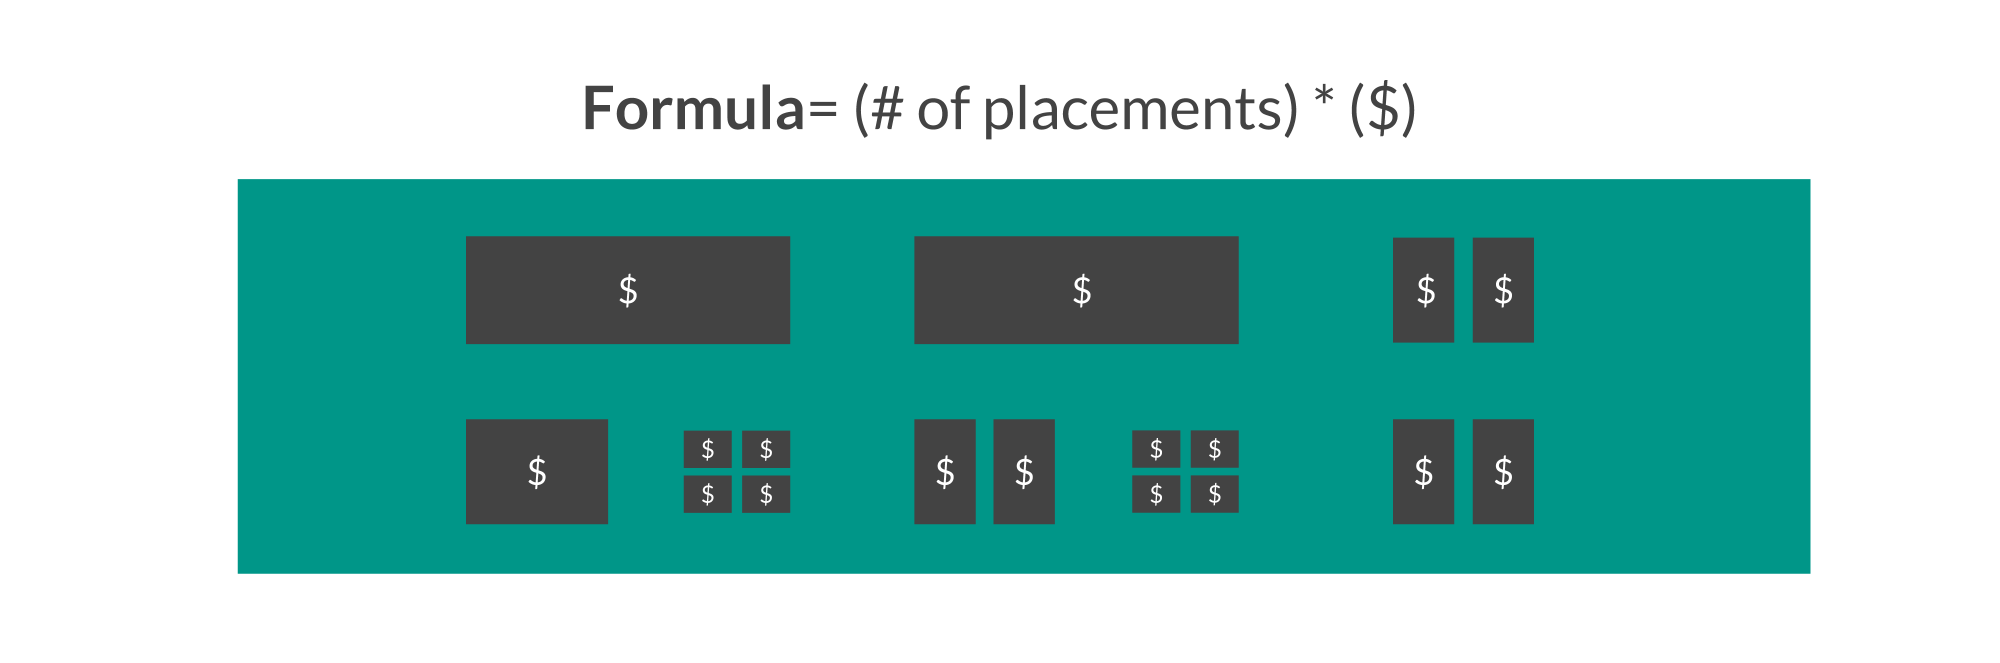 Cost Method using total placements and cost